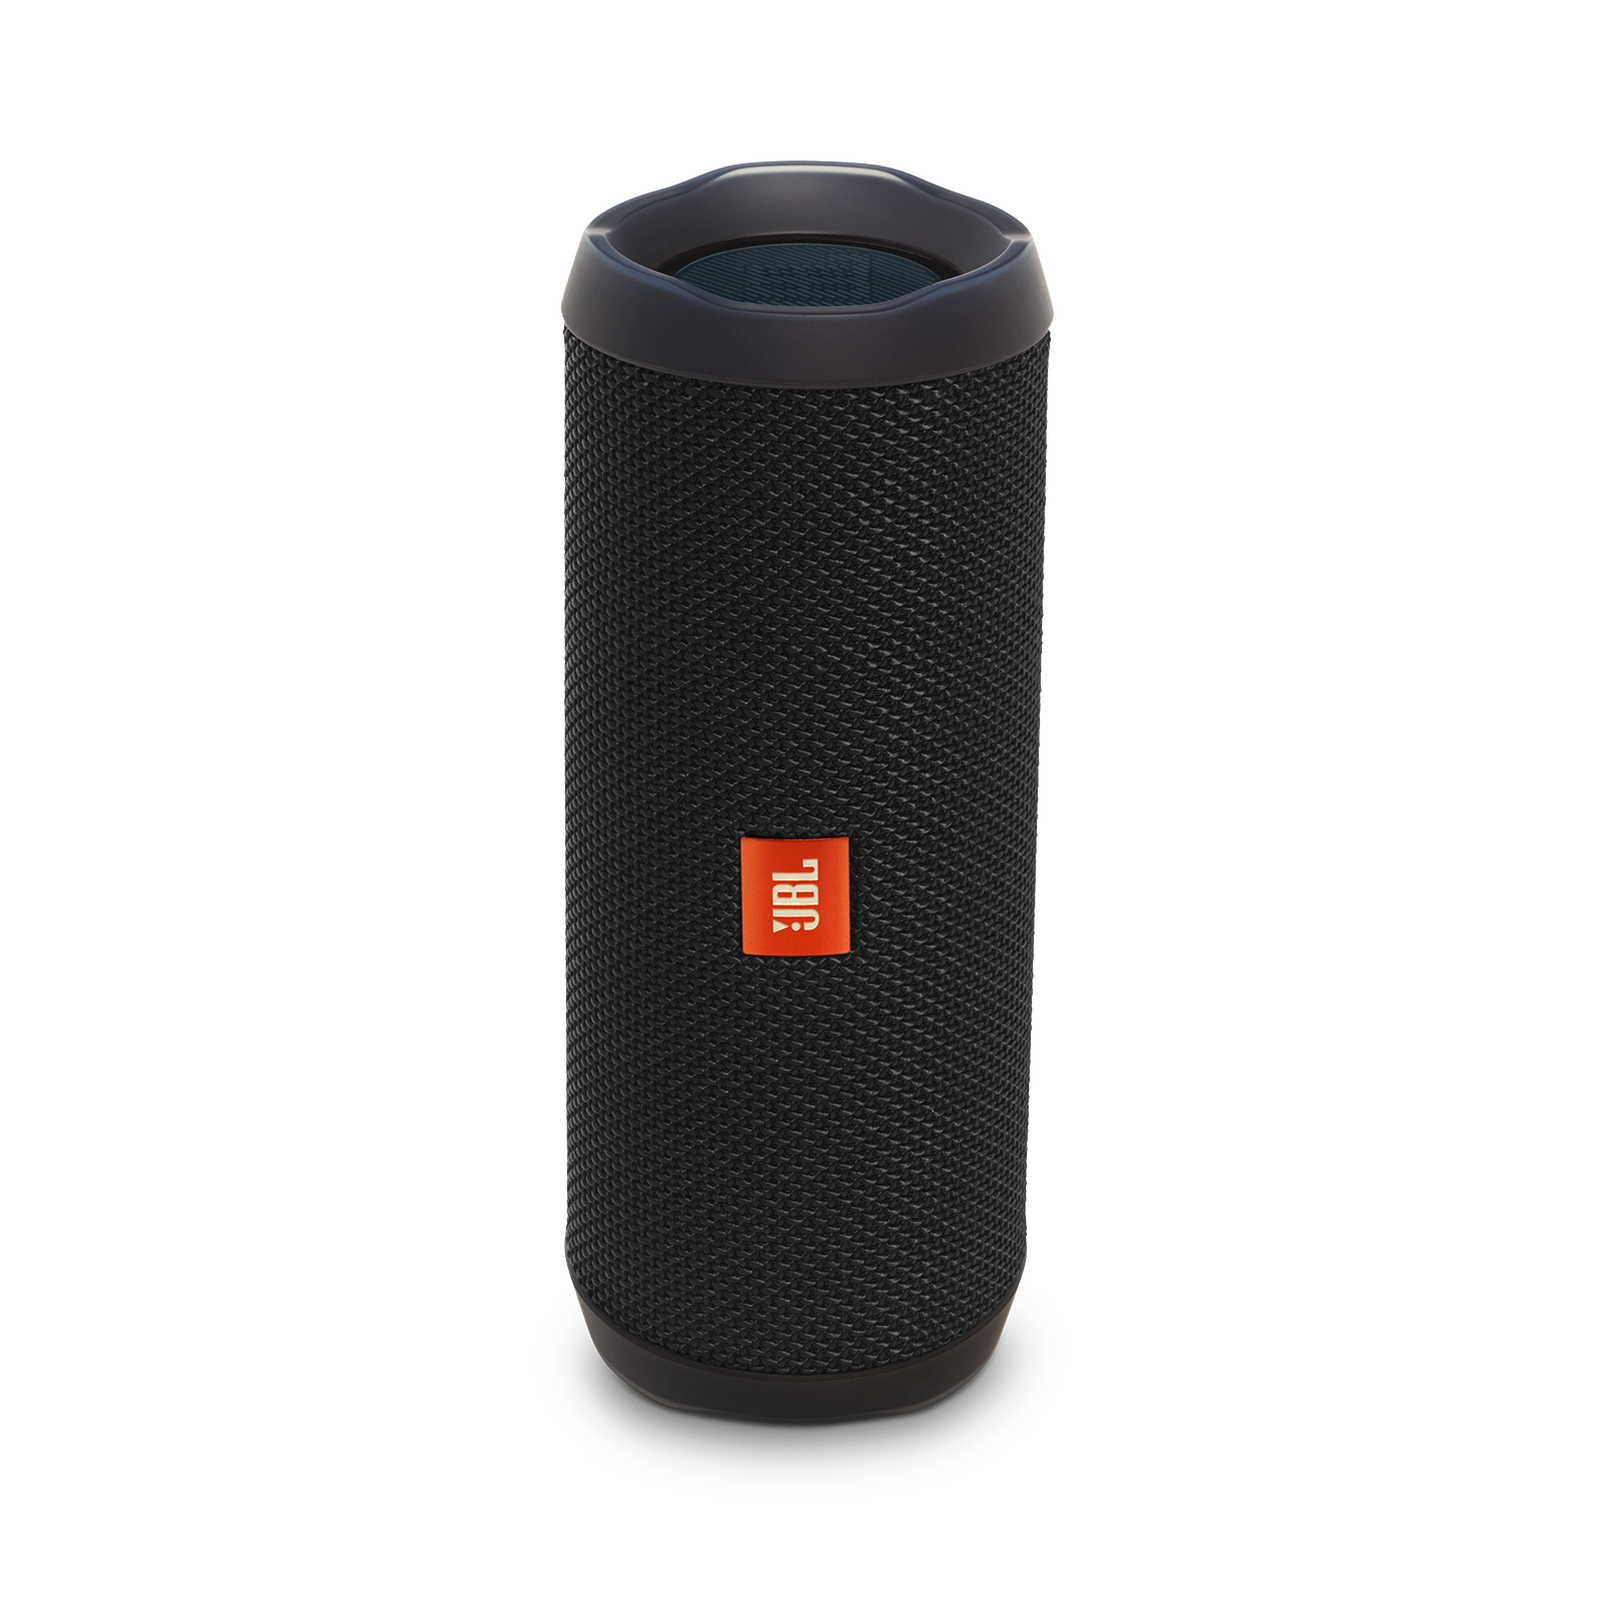 JBL Flip 4 Waterproof Portable Bluetooth Speaker - Black *Authorized Dealer* 5